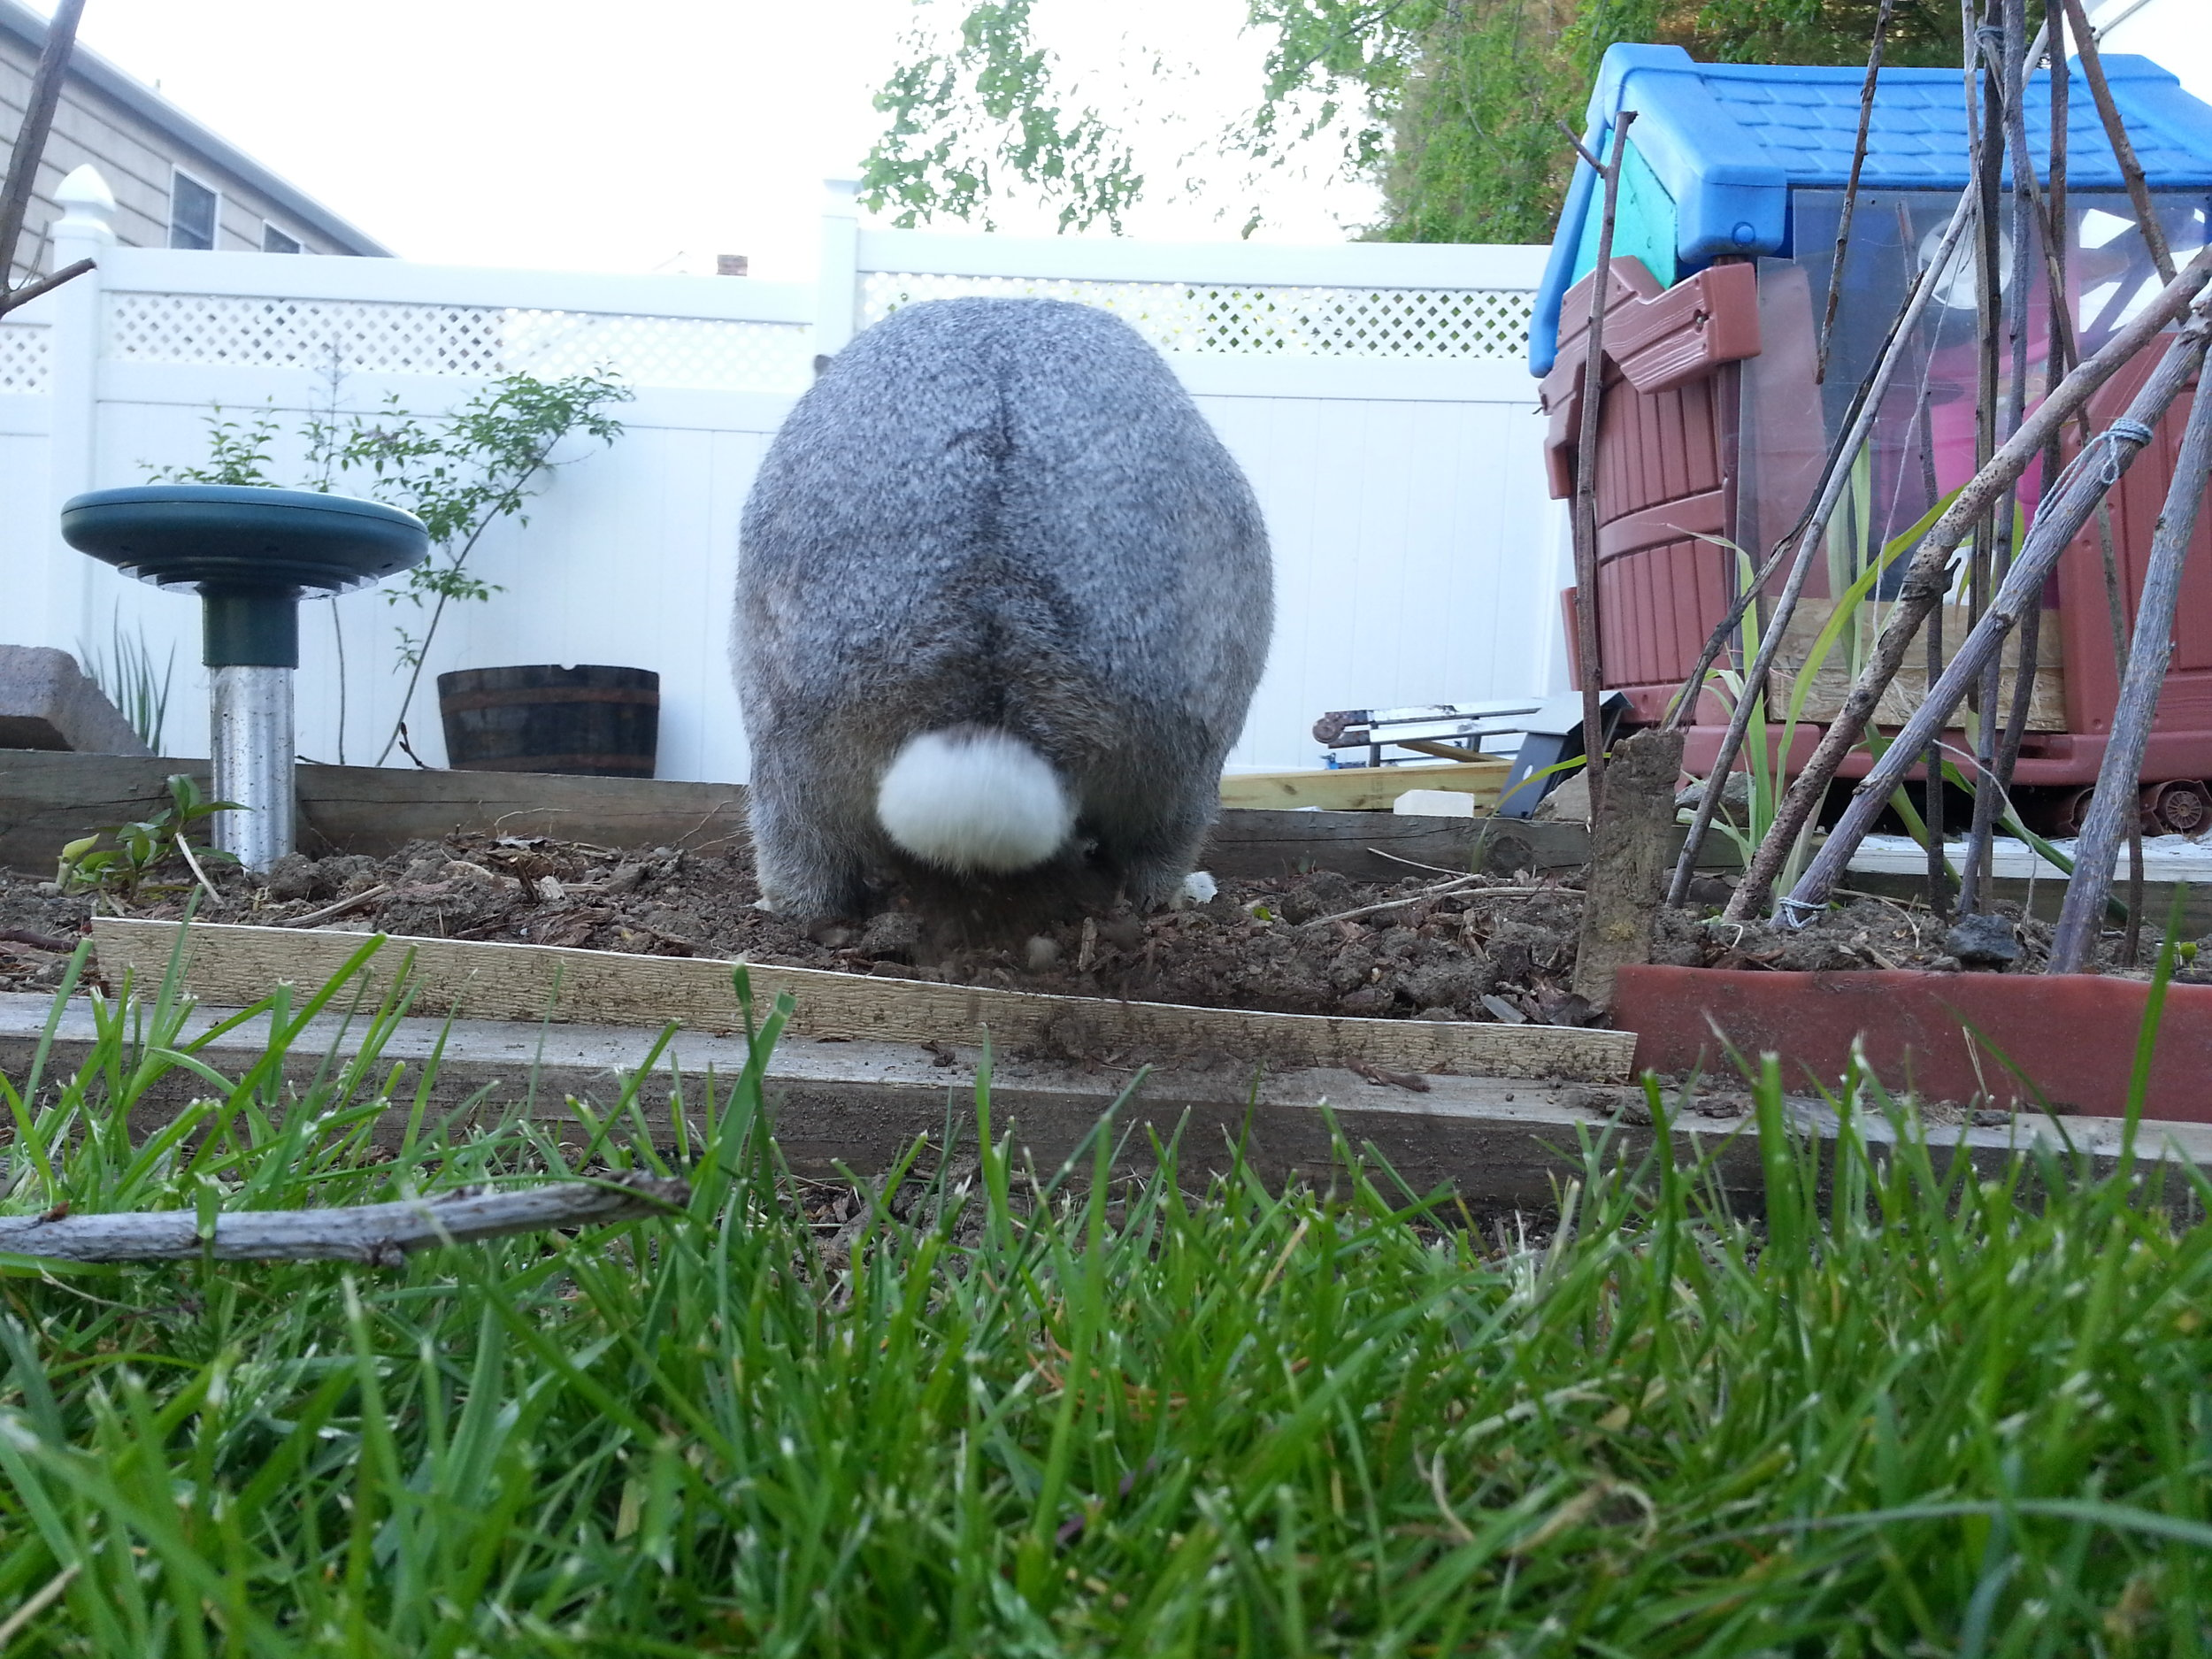 After a Brief Rest, Bunny Gets Back to Exploring the Backyard 3